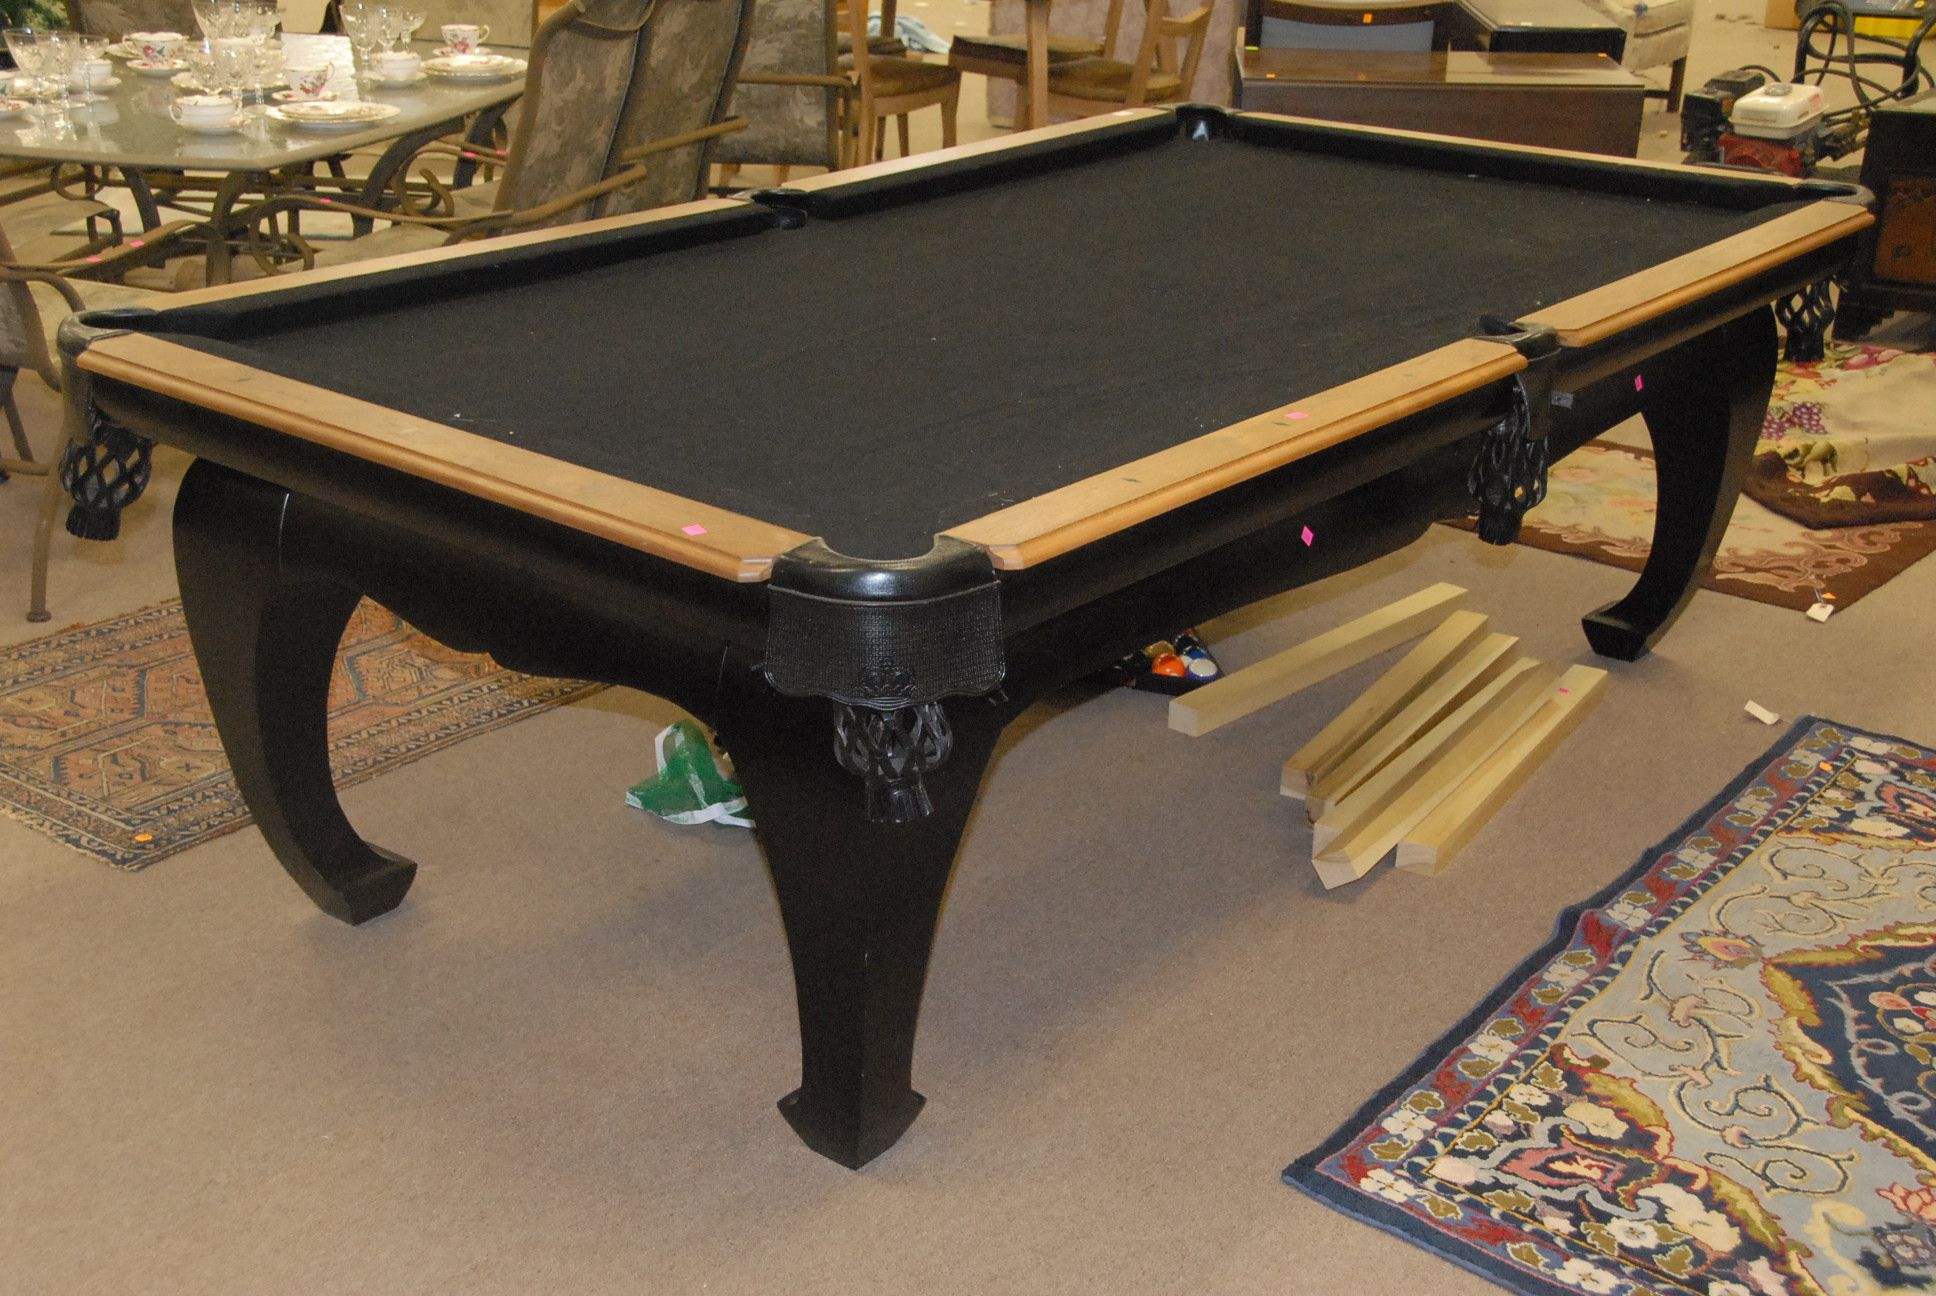 Accessories & Furniture Marvelous Black Wooden Pool Table Design